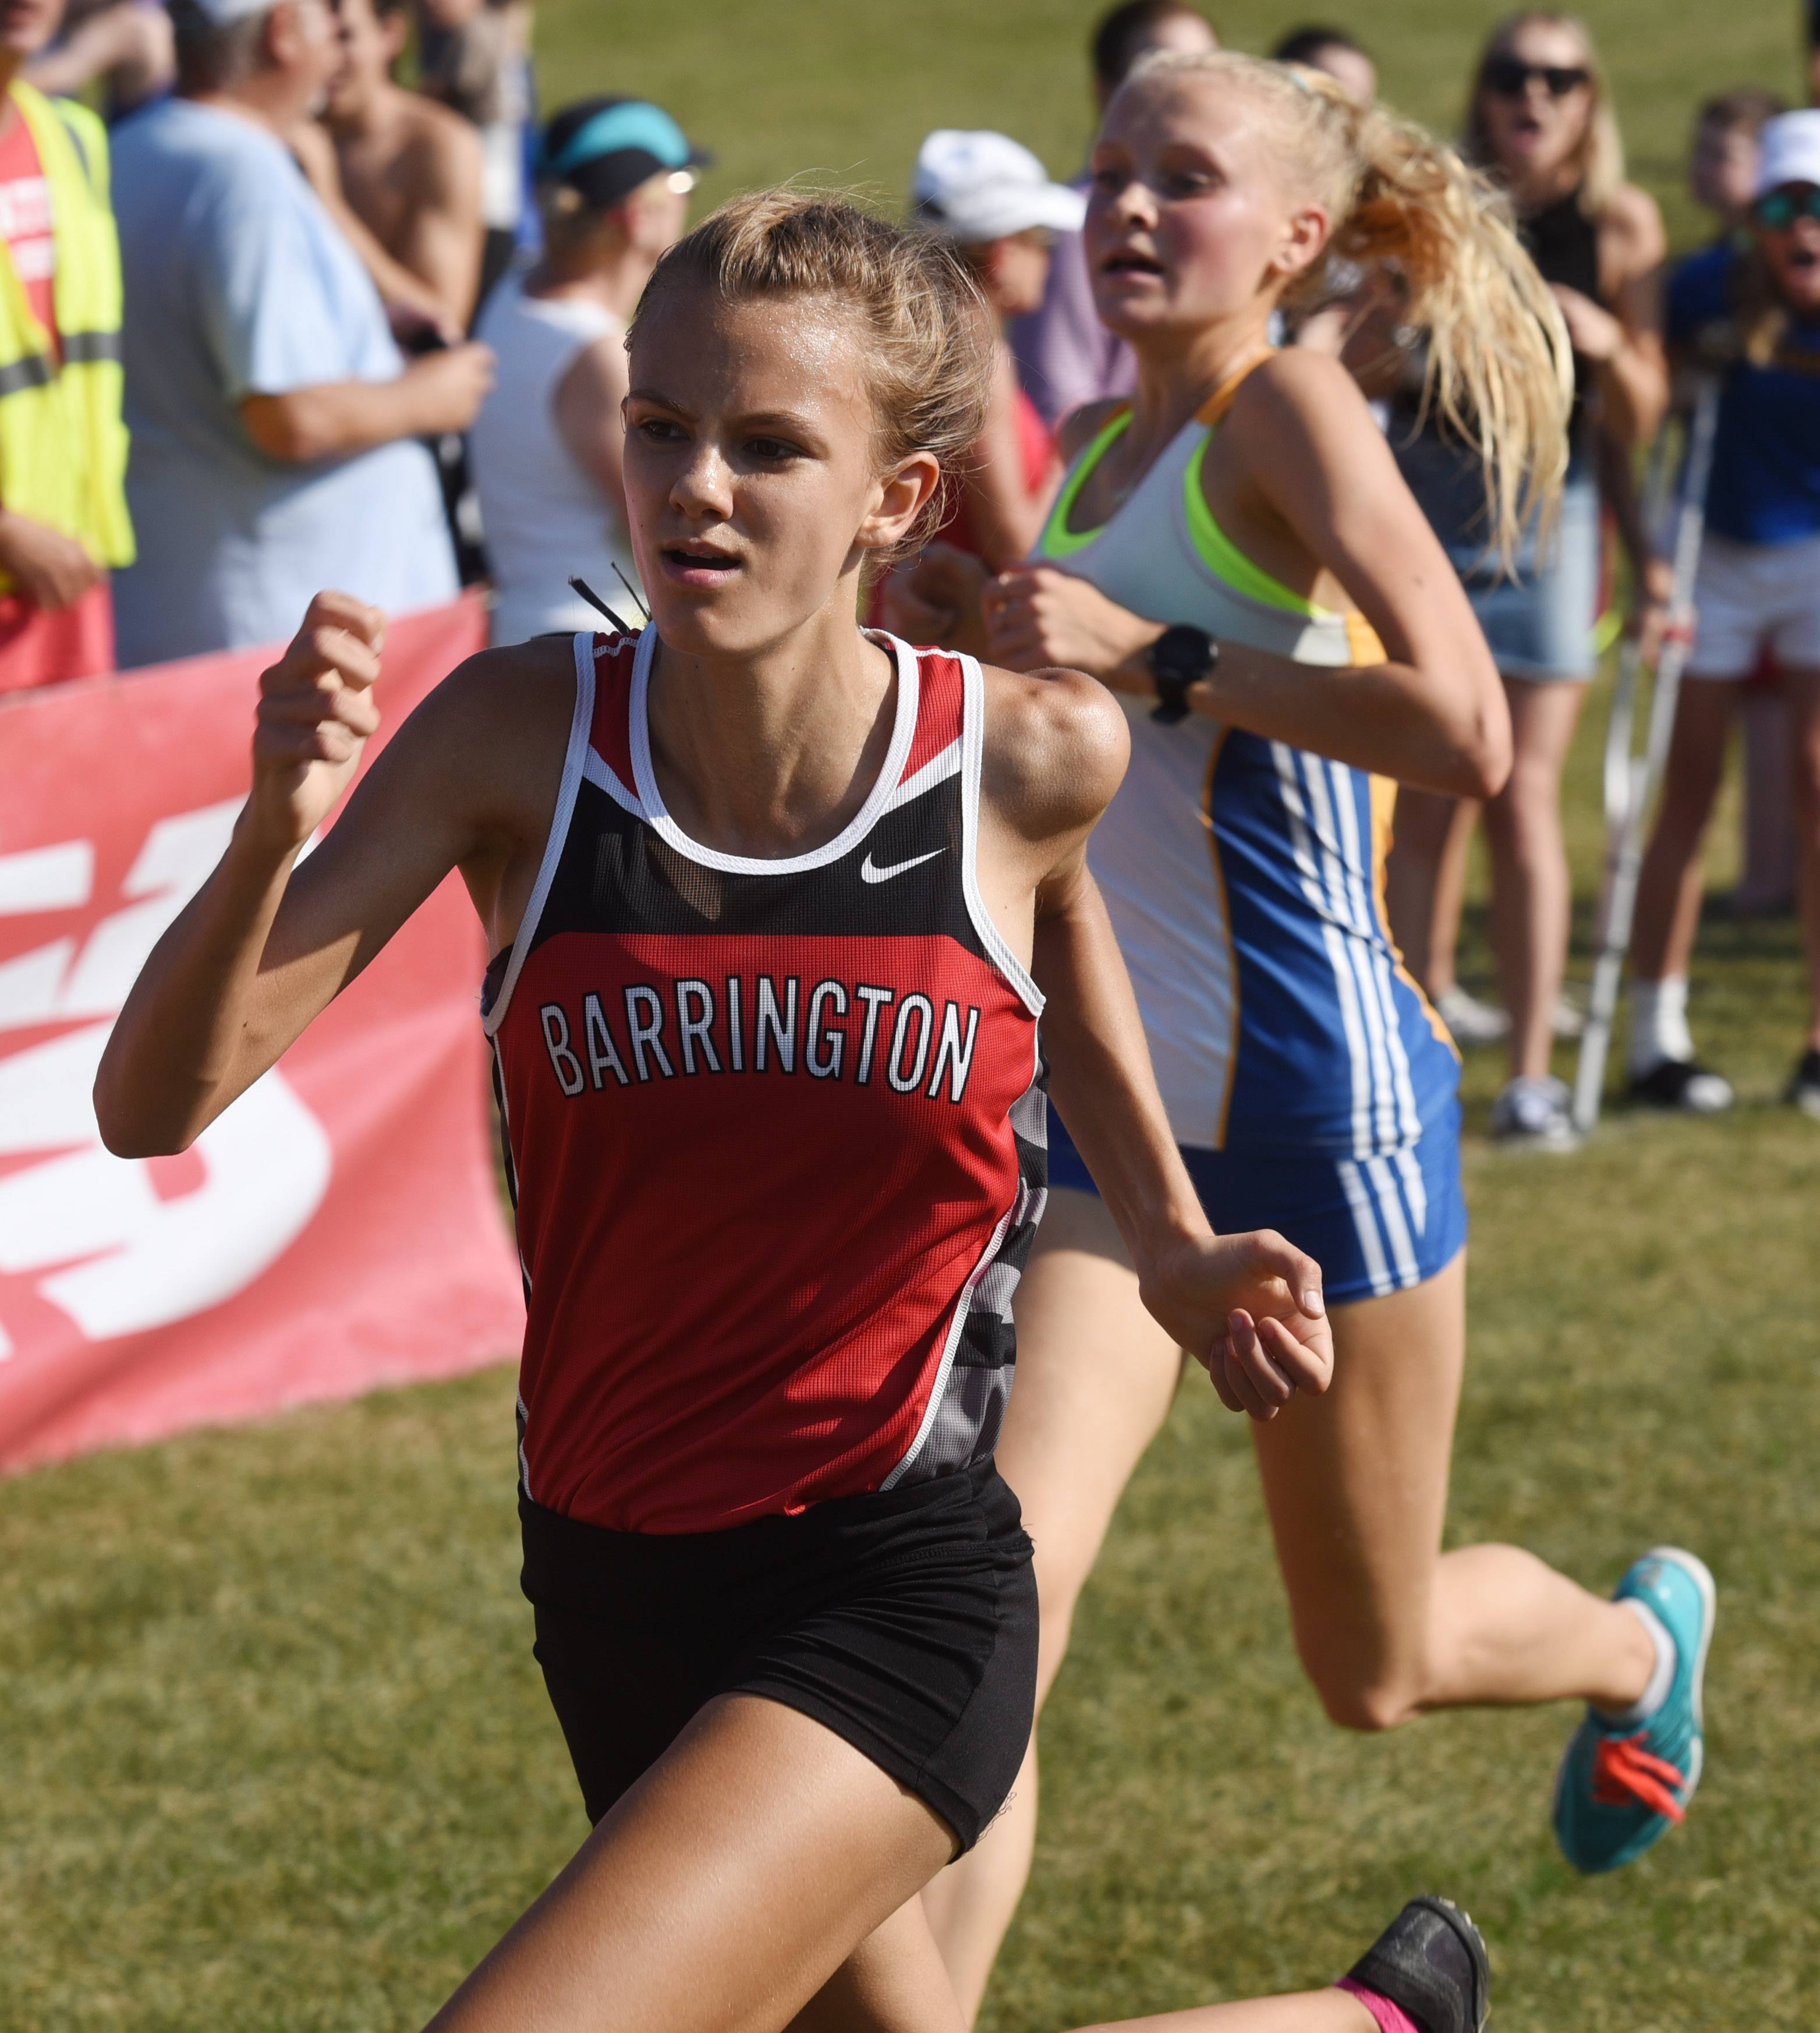 Barrington's Jocelyn Long edges out Lake Forest's Brett Chody for second place during the Palatine cross country invitational at Deer Grove Forest Preserve. The Fillies hope to be among the top teams in Saturday's Class 3A state meet.